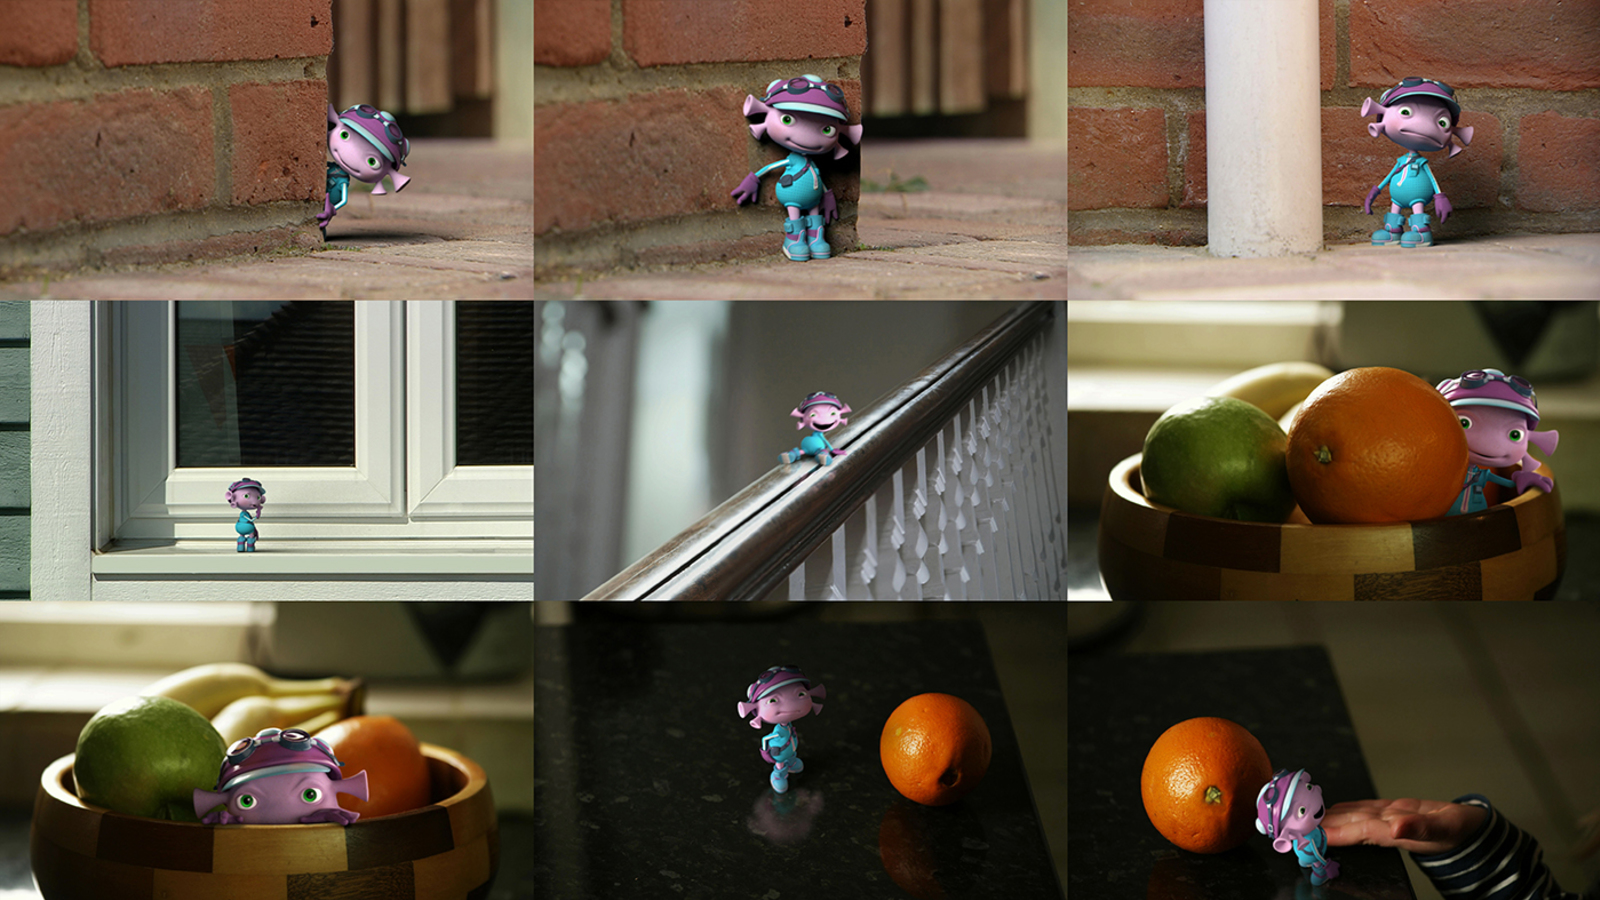 9 frame from the Floogals animation